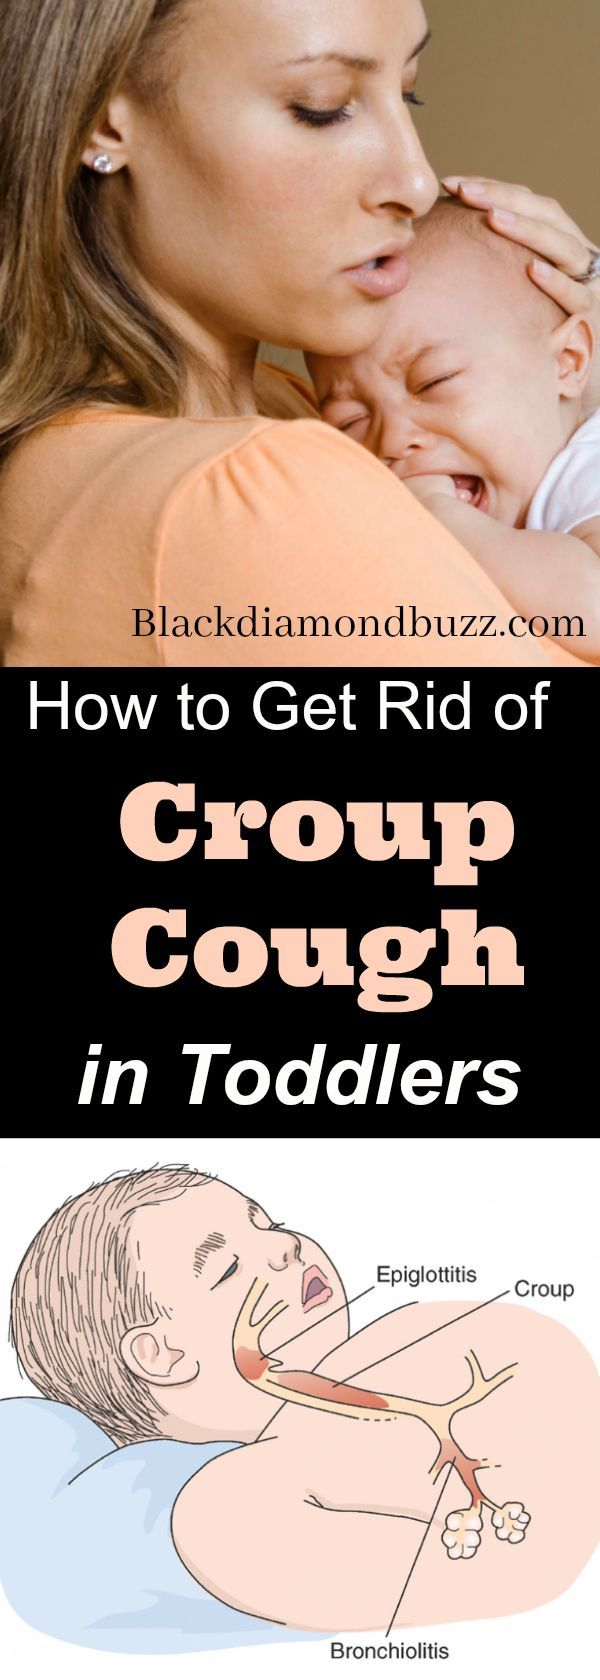 Natural Remedies For Croup In Toddlers